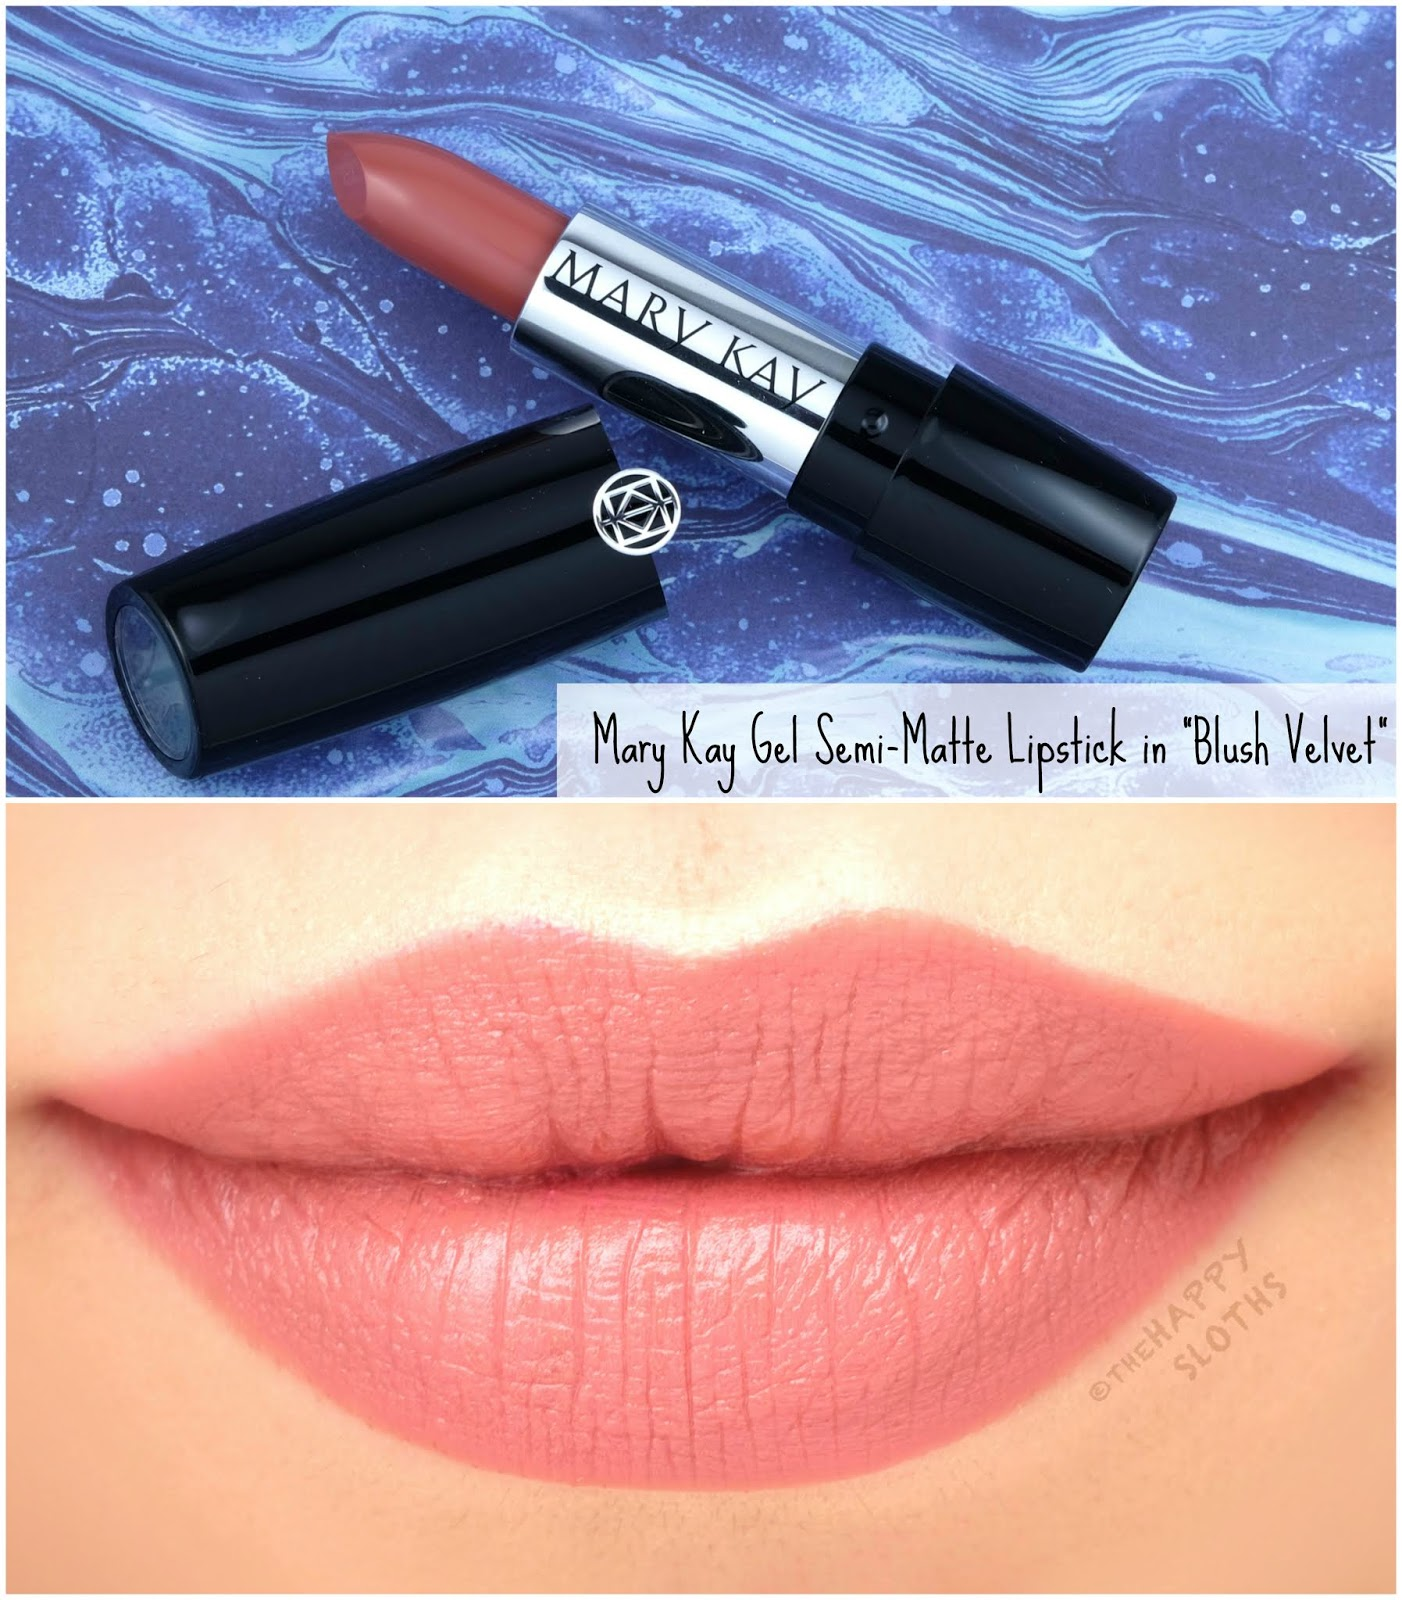 """Mary Kay   Spring 2020 Gel Semi-Matte Lipstick in """"Blush Velvet"""": Review and Swatches"""